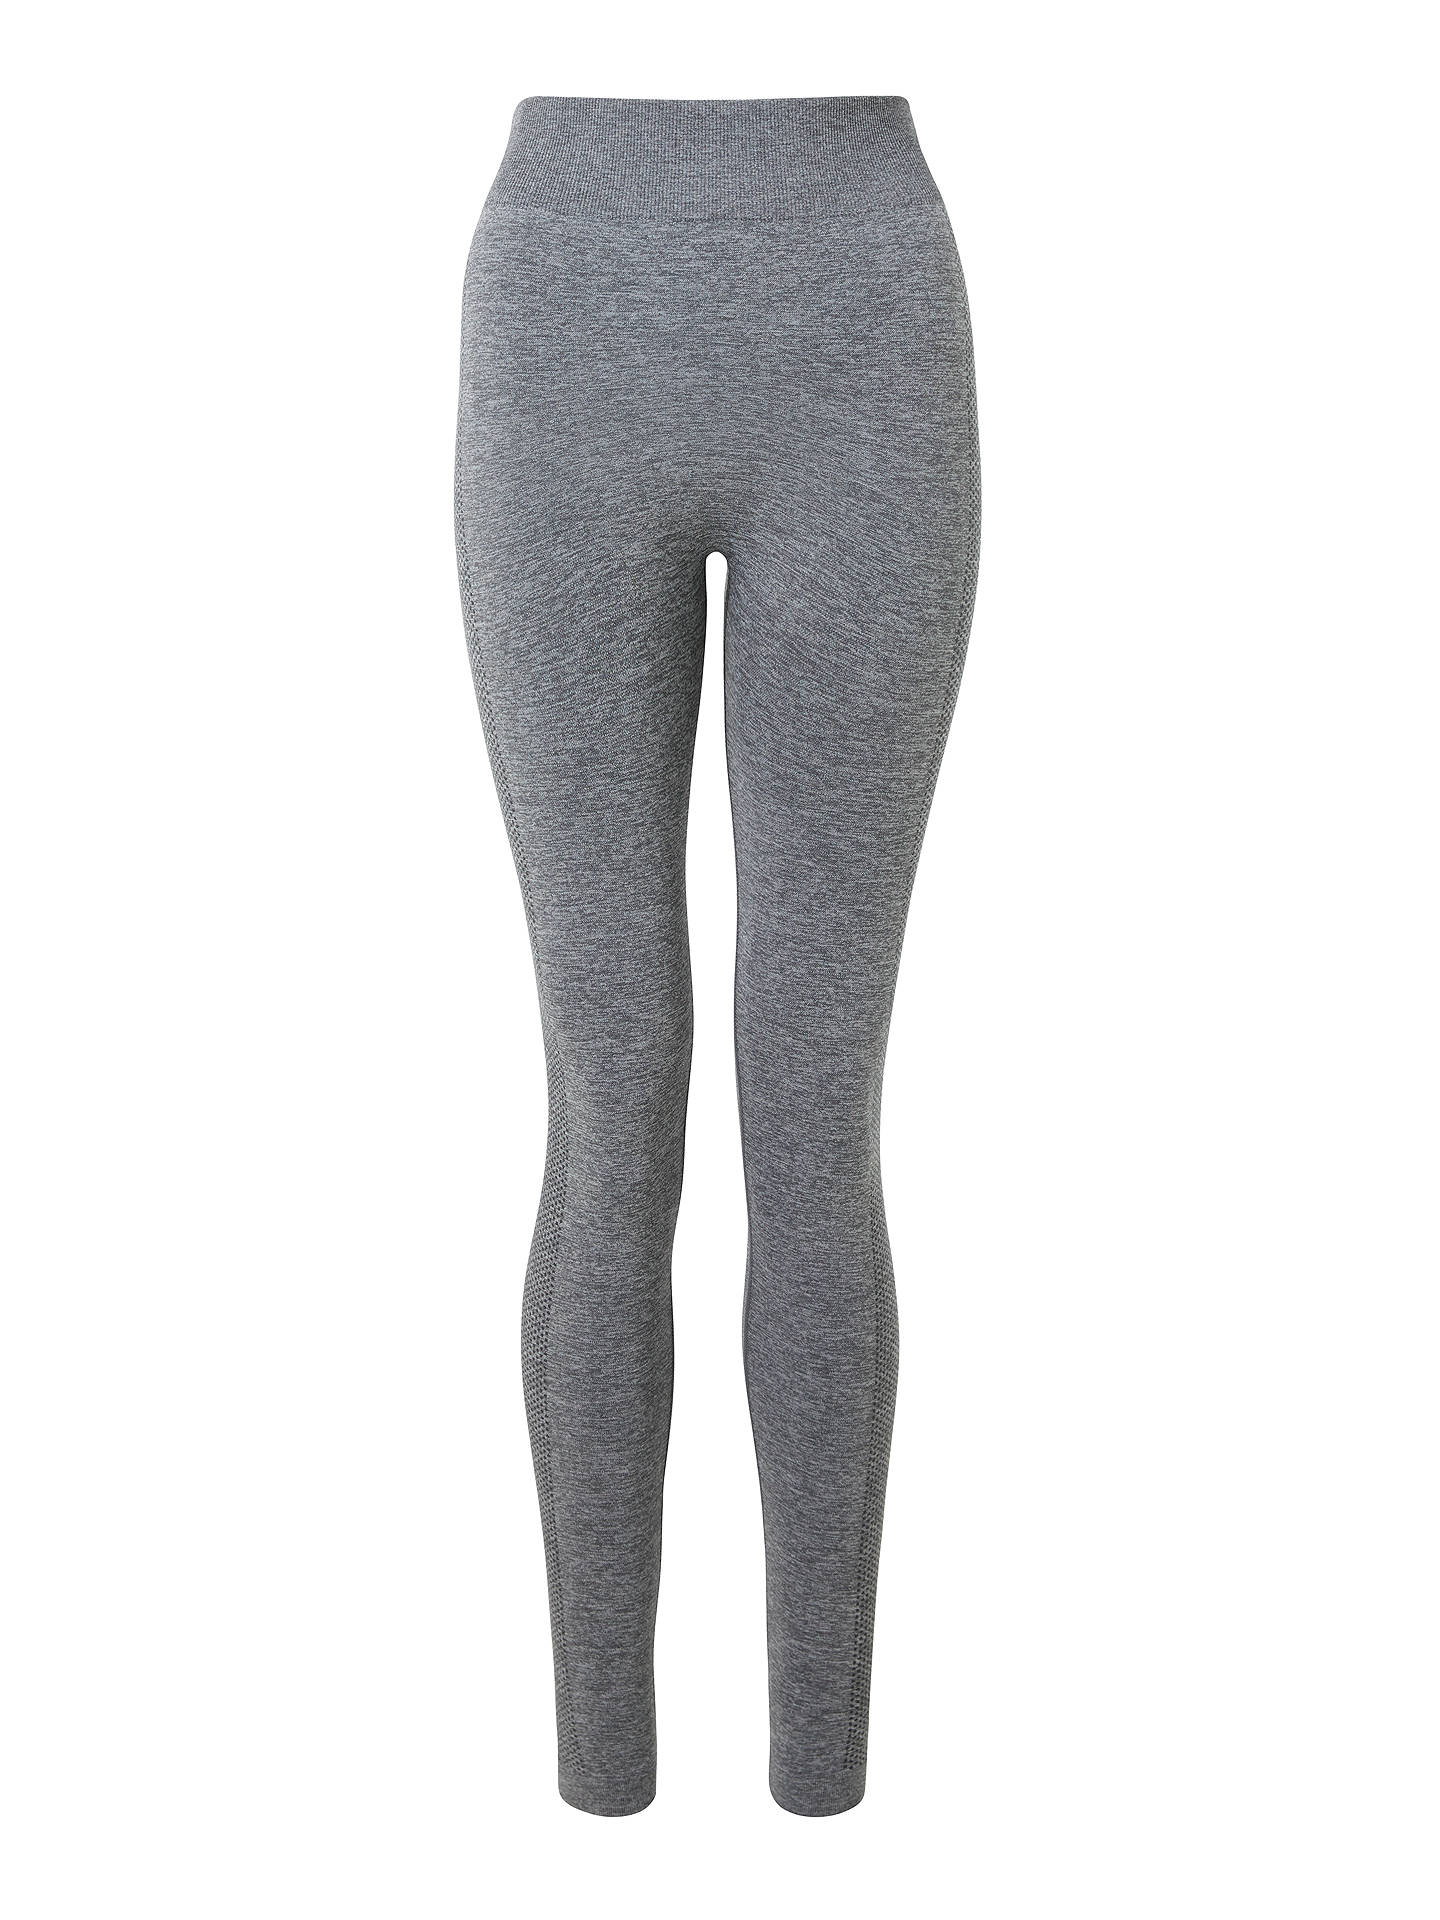 BuyPATTERNITY + John Lewis Seam Free Textured Leggings, Grey, S Online at johnlewis.com